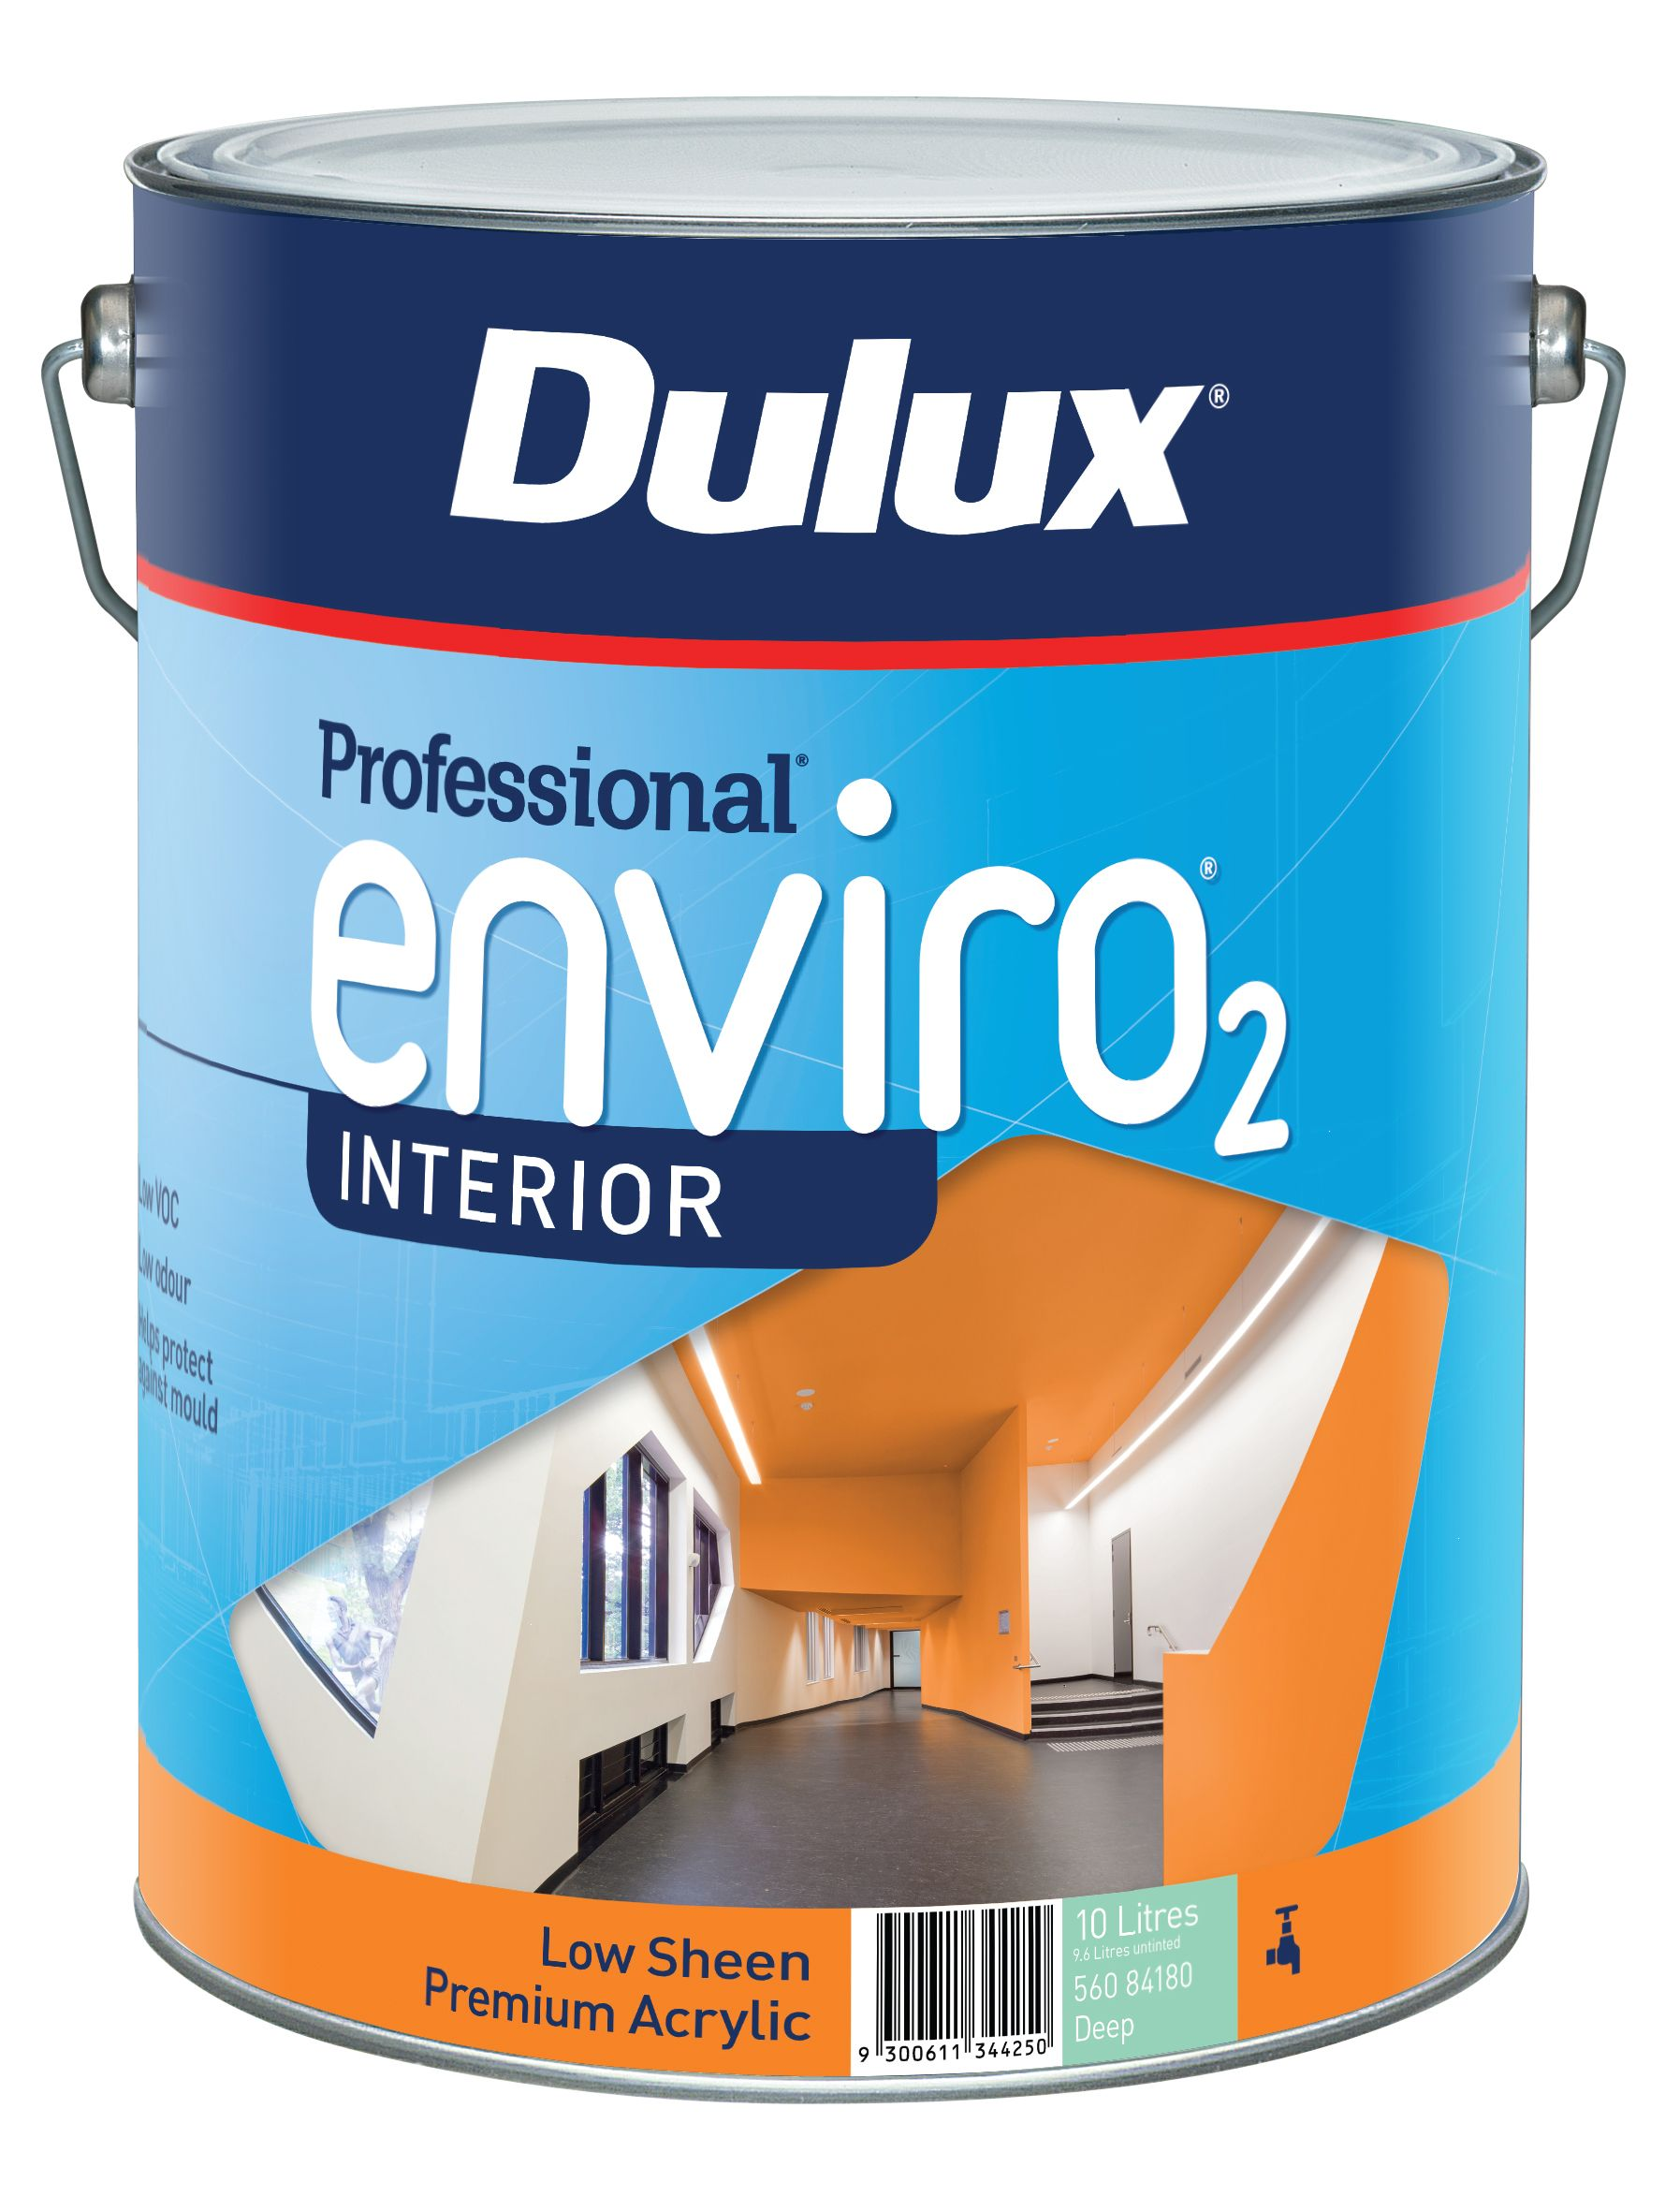 Dulux Professional EnvirO2 Is A Premium Water Based, Interior Paint Range  Formulated For The